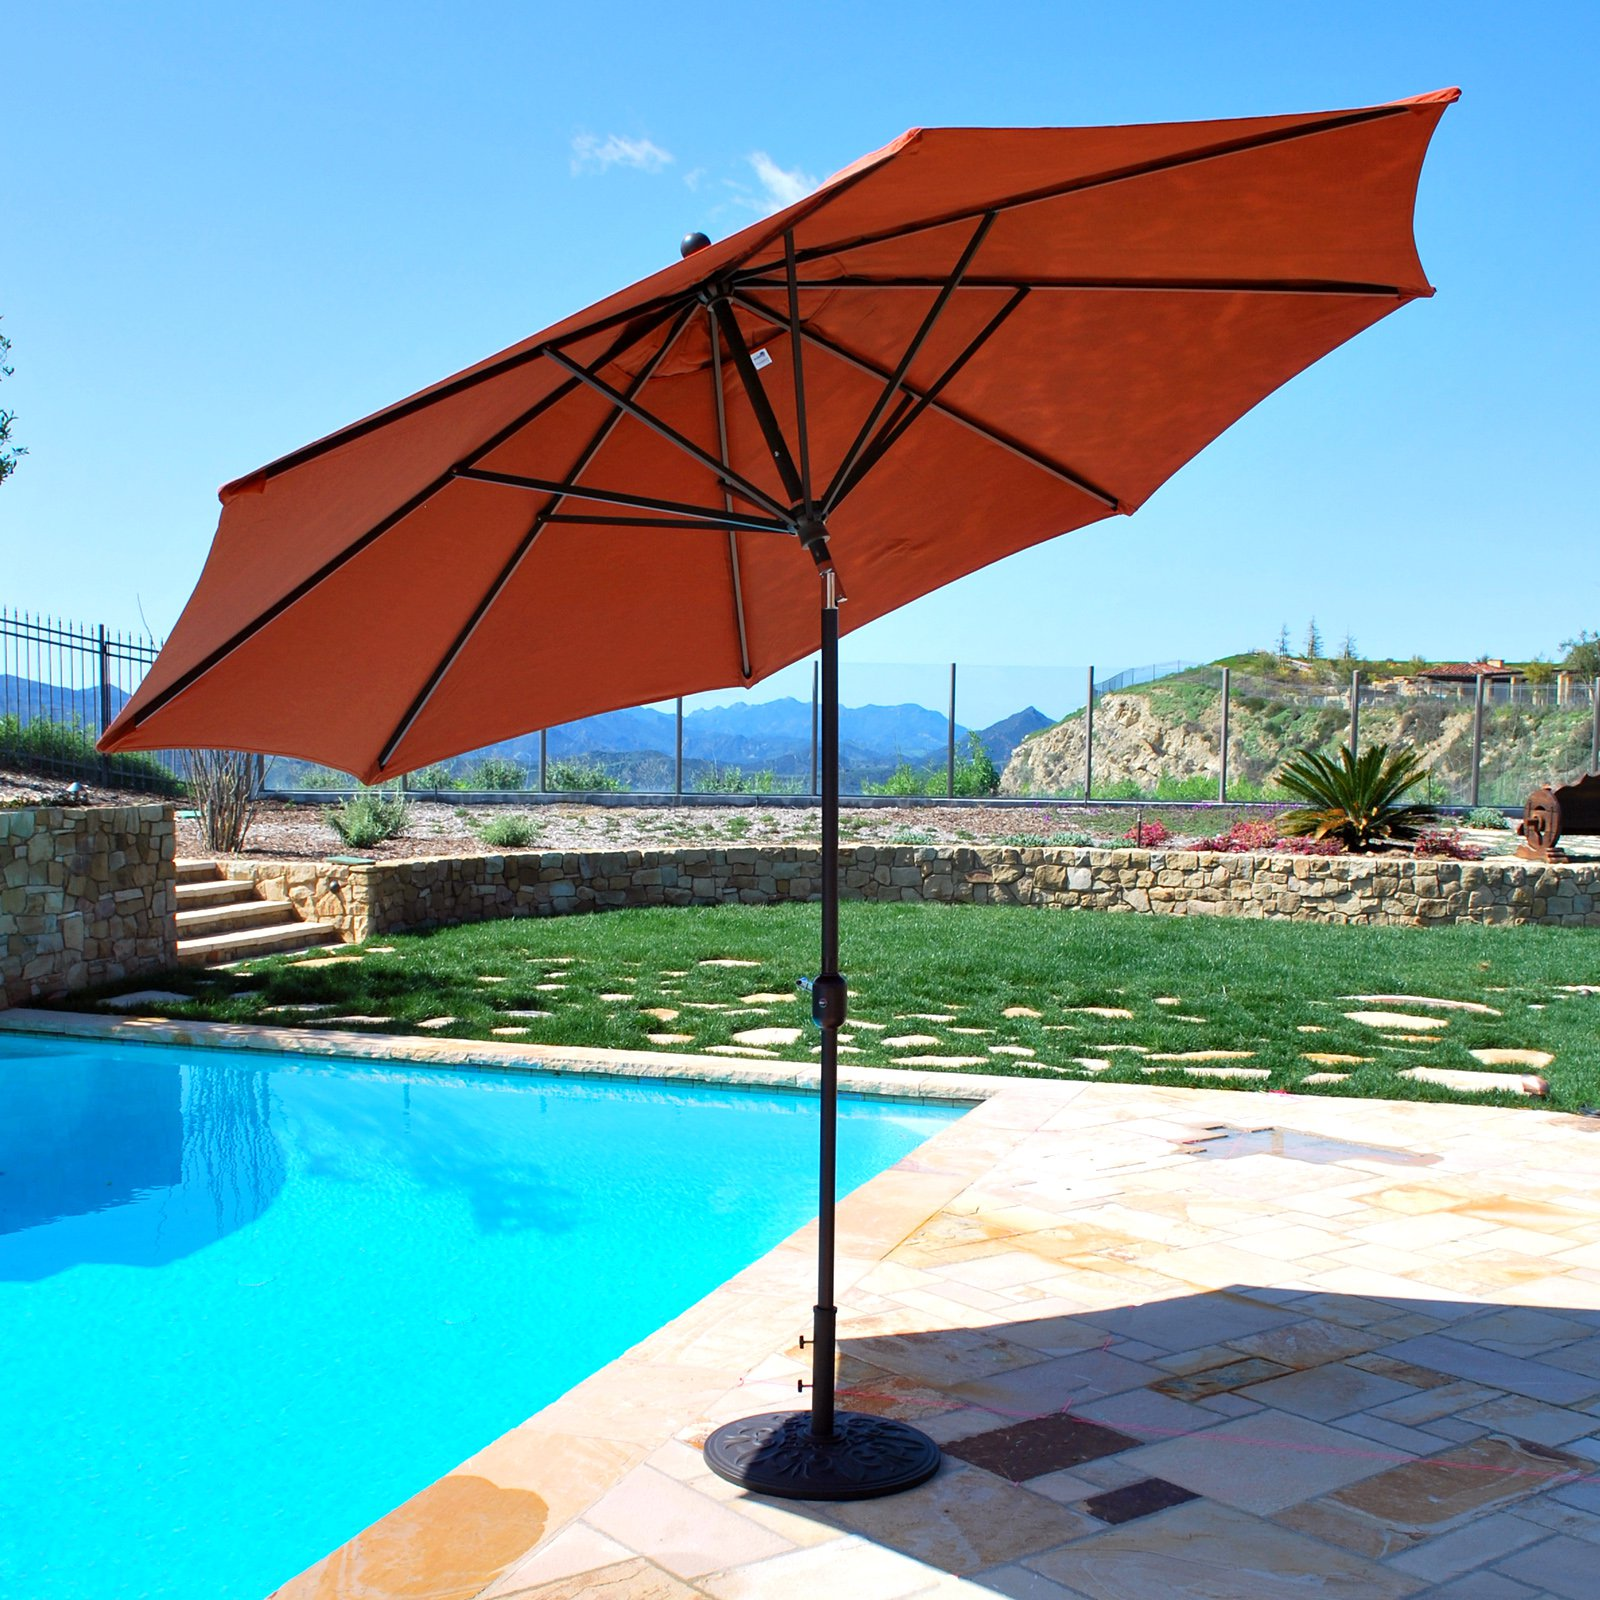 Captivating Galtech Sunbrella 11 Ft. Maximum Shade Deluxe Aluminum Auto Tilt Patio  Umbrella   Walmart.com